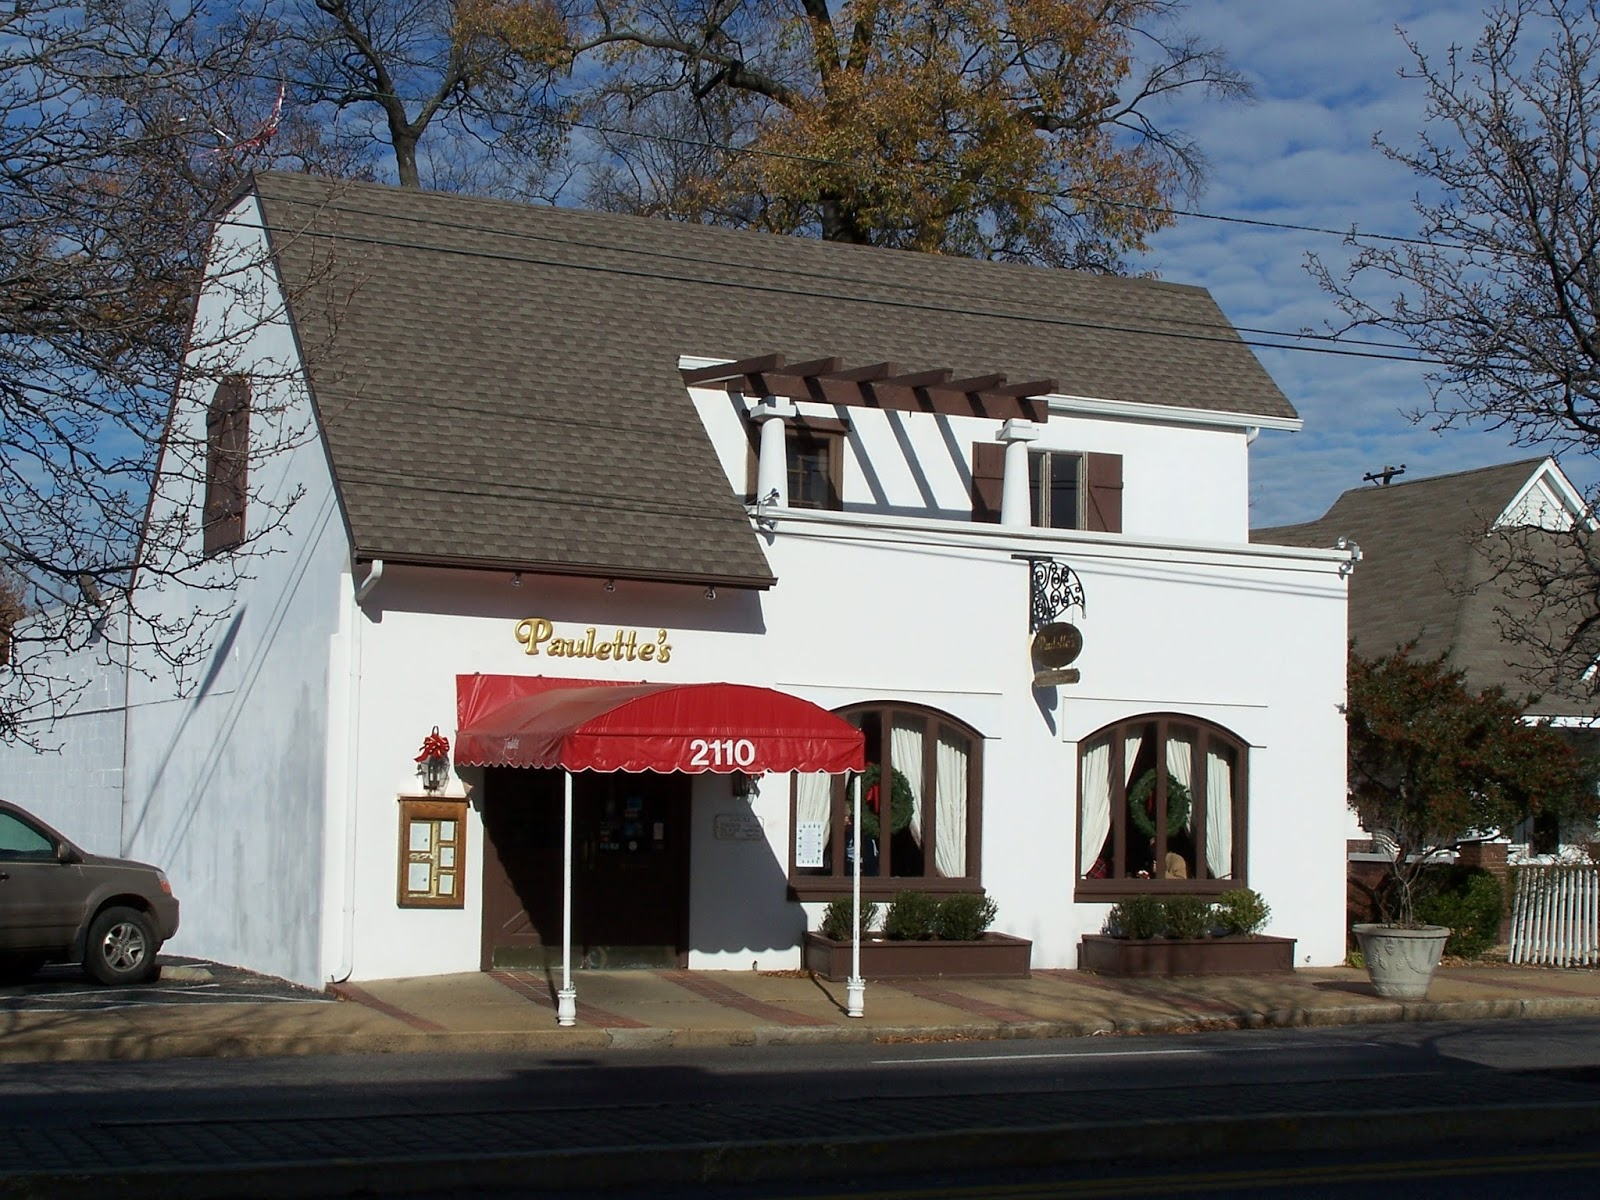 When I Took This Photo In 2006 Paulette S Was One Of The Few Restaurants Overton Square At Time Today Is Downtown Harbor Town